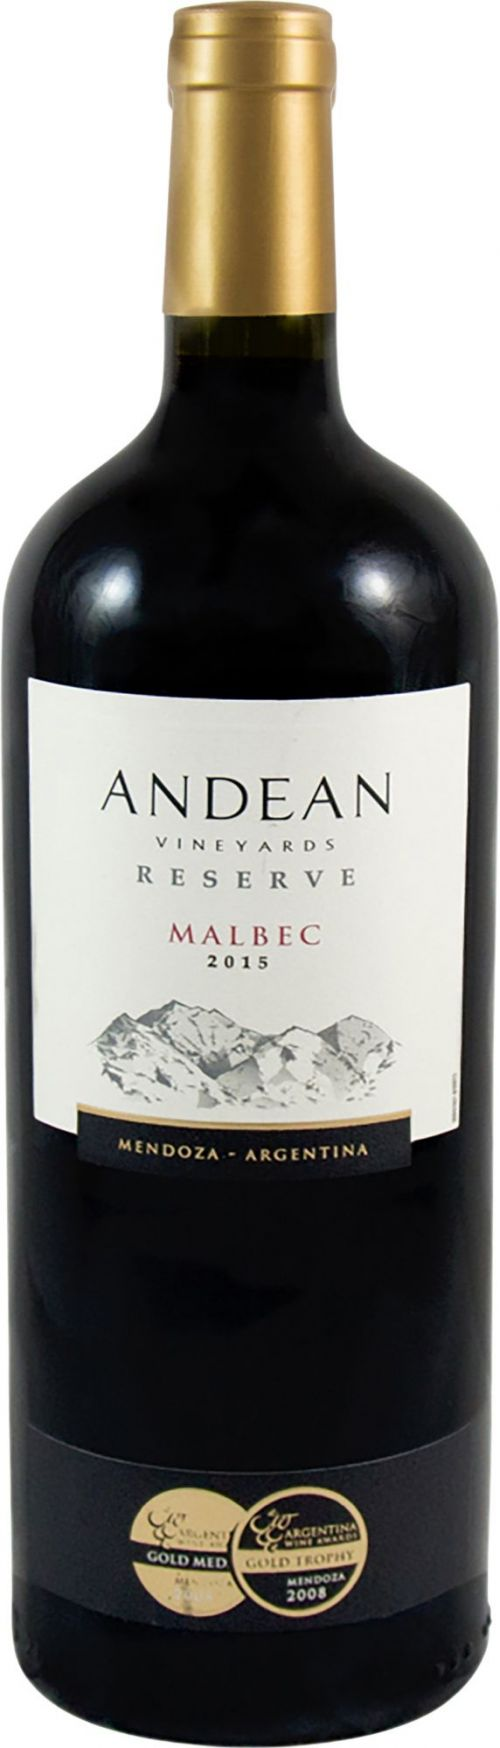 Andean Vineyards Malbec, Mendoza